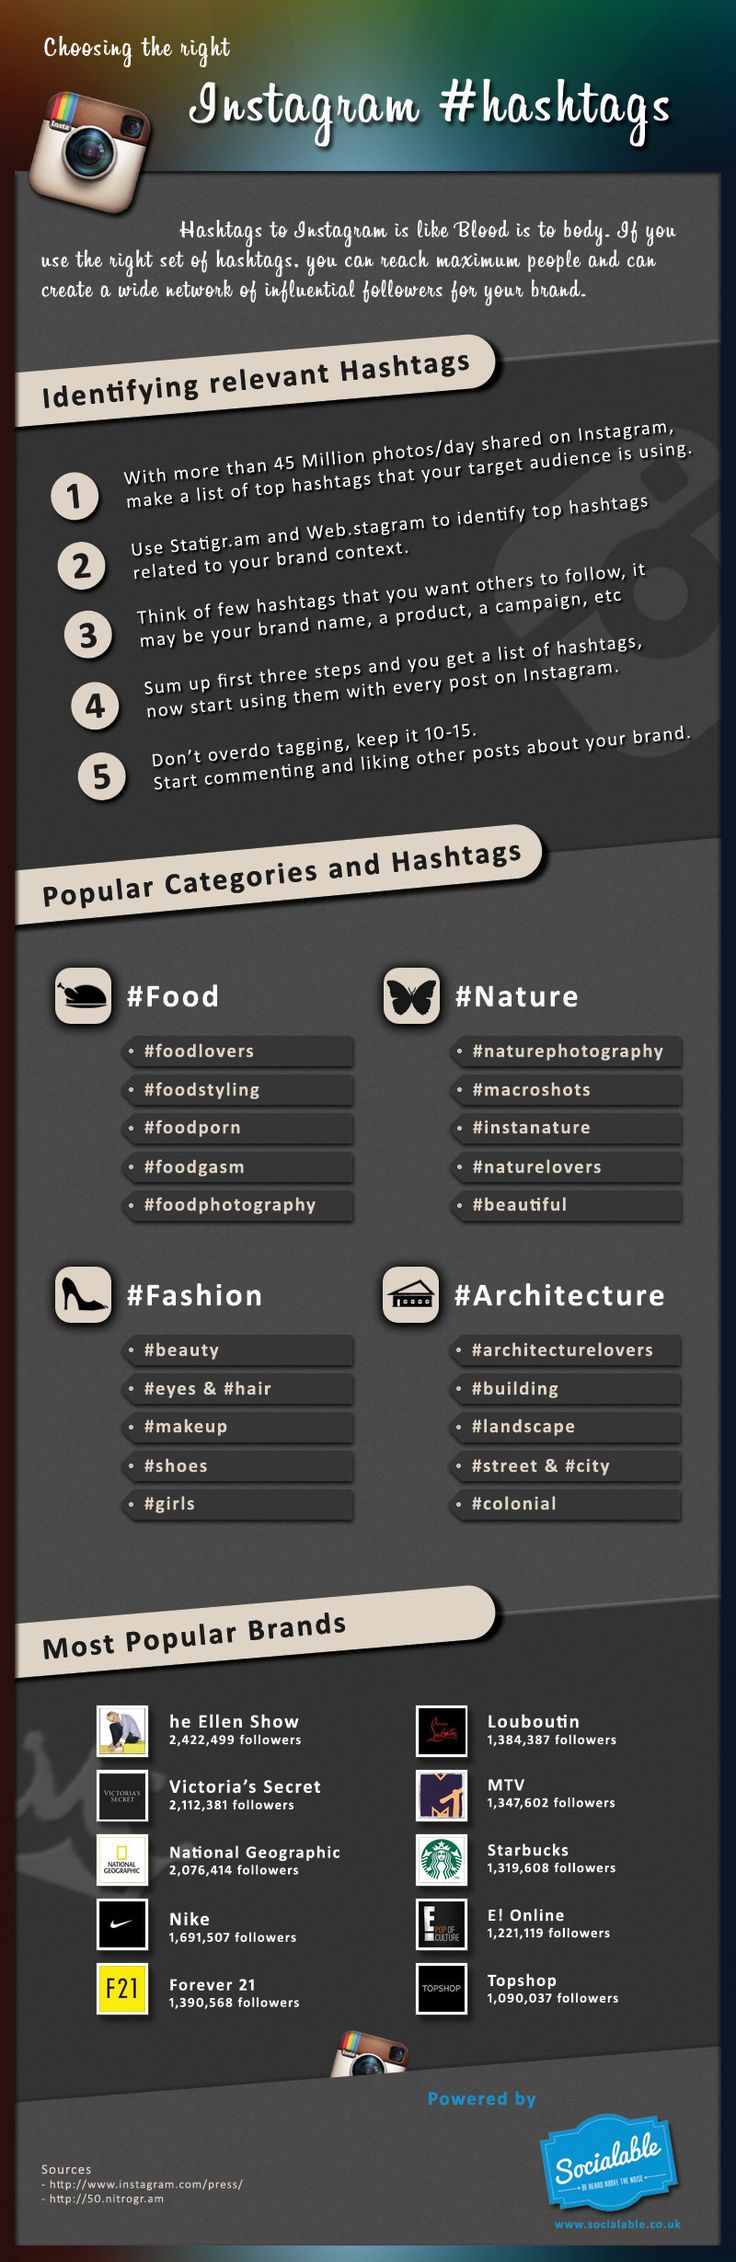 Choosing the right Instagram #hashtags for brands